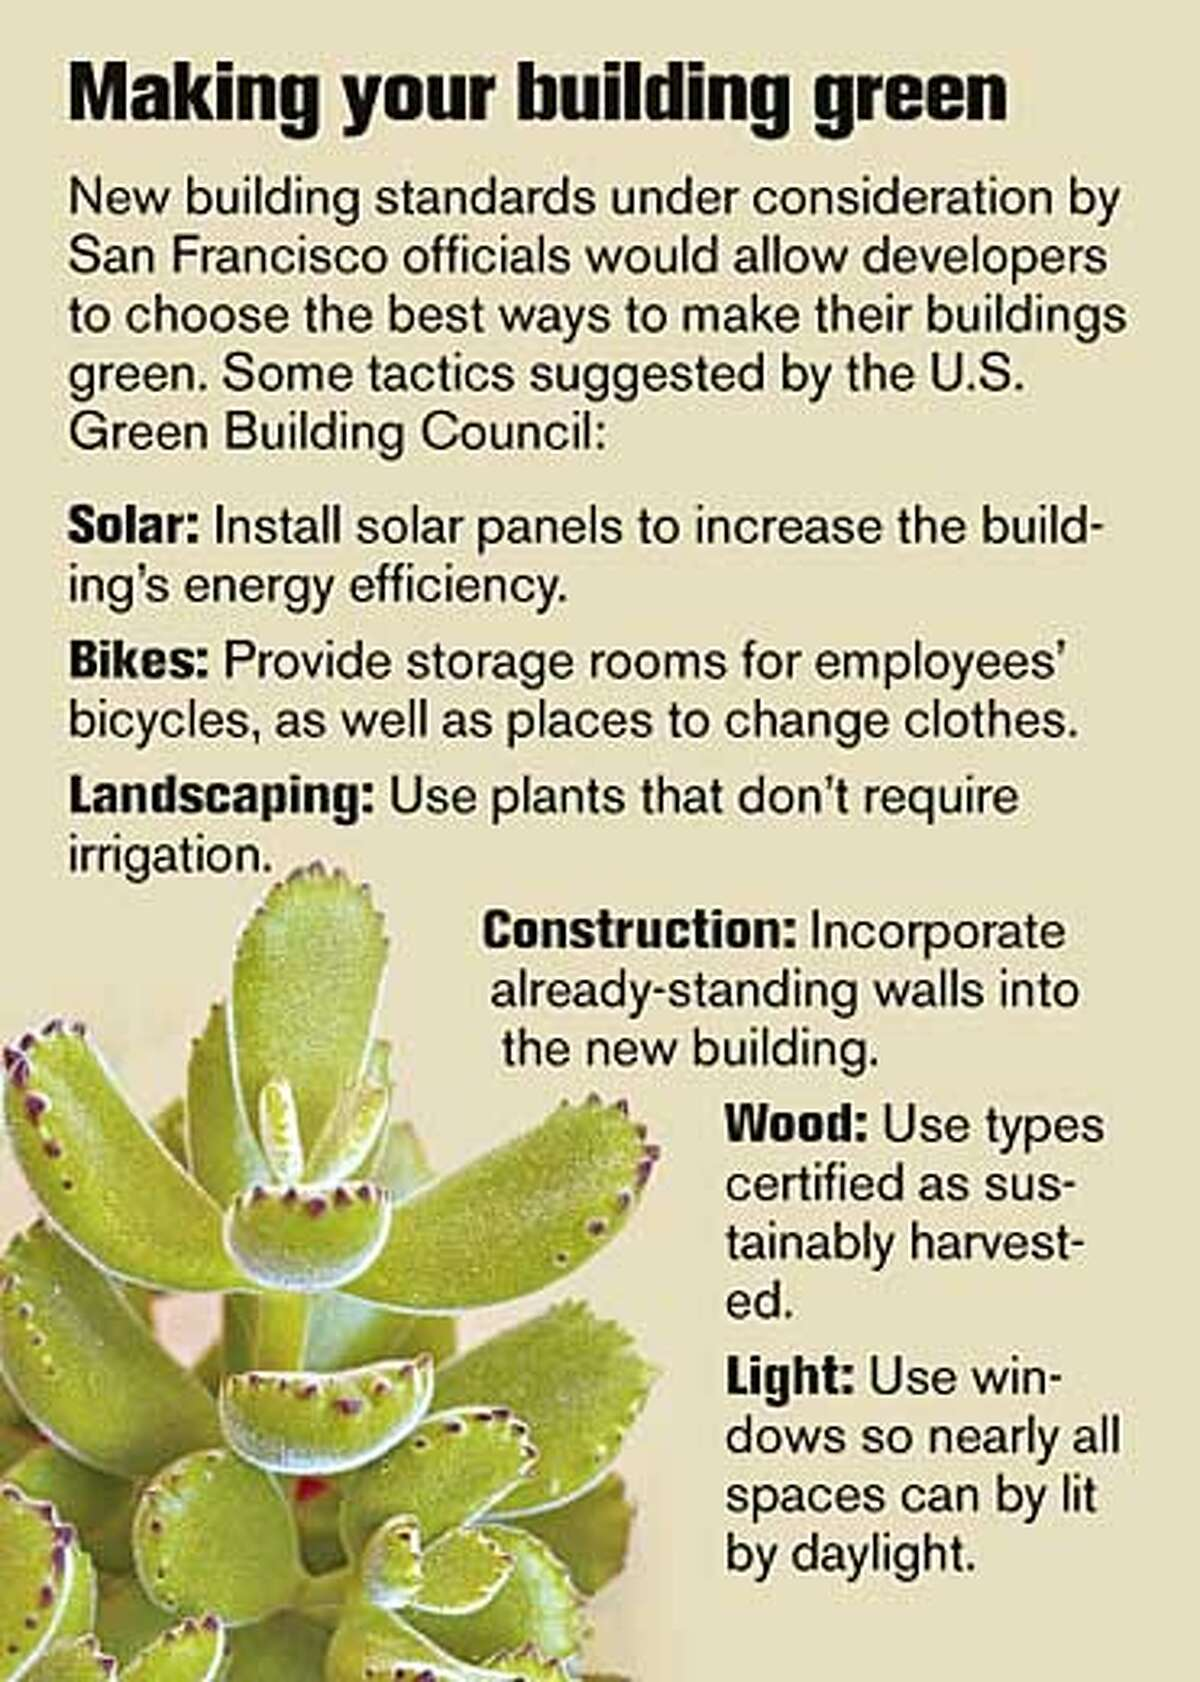 Making your building green. Chronicle Graphic